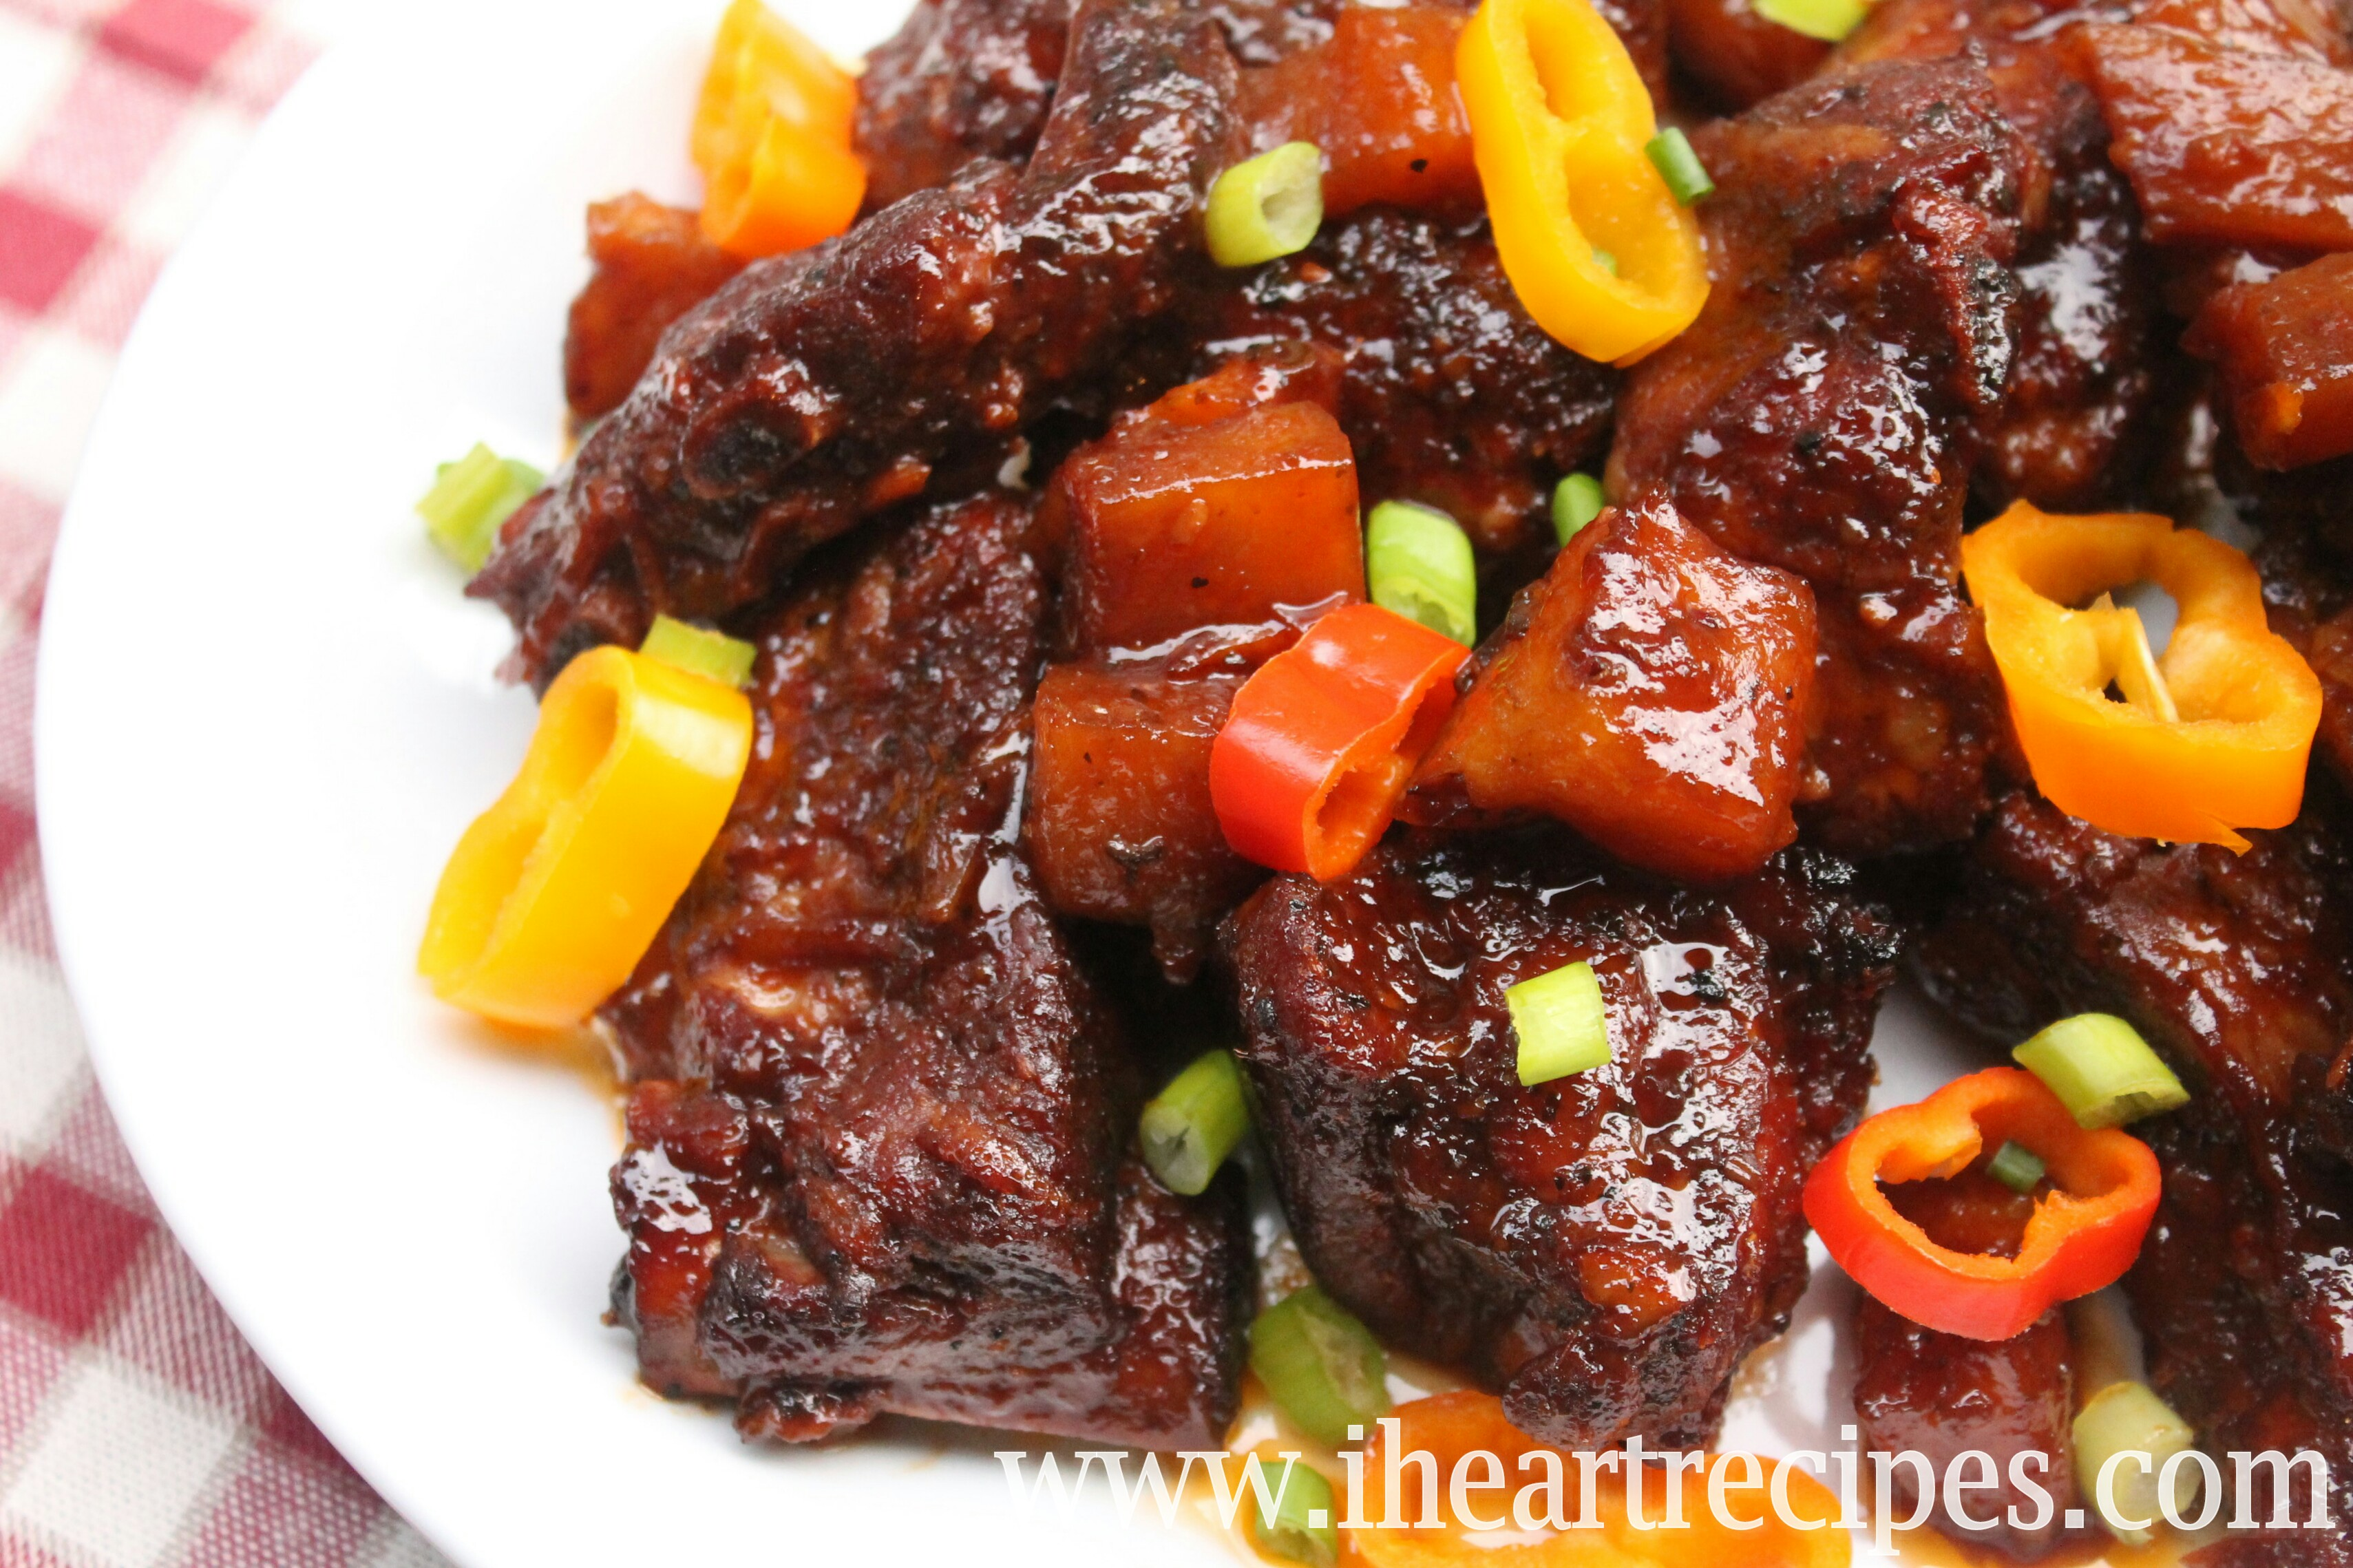 These sweet and smokey pork spare ribs are cooked to tender perfection